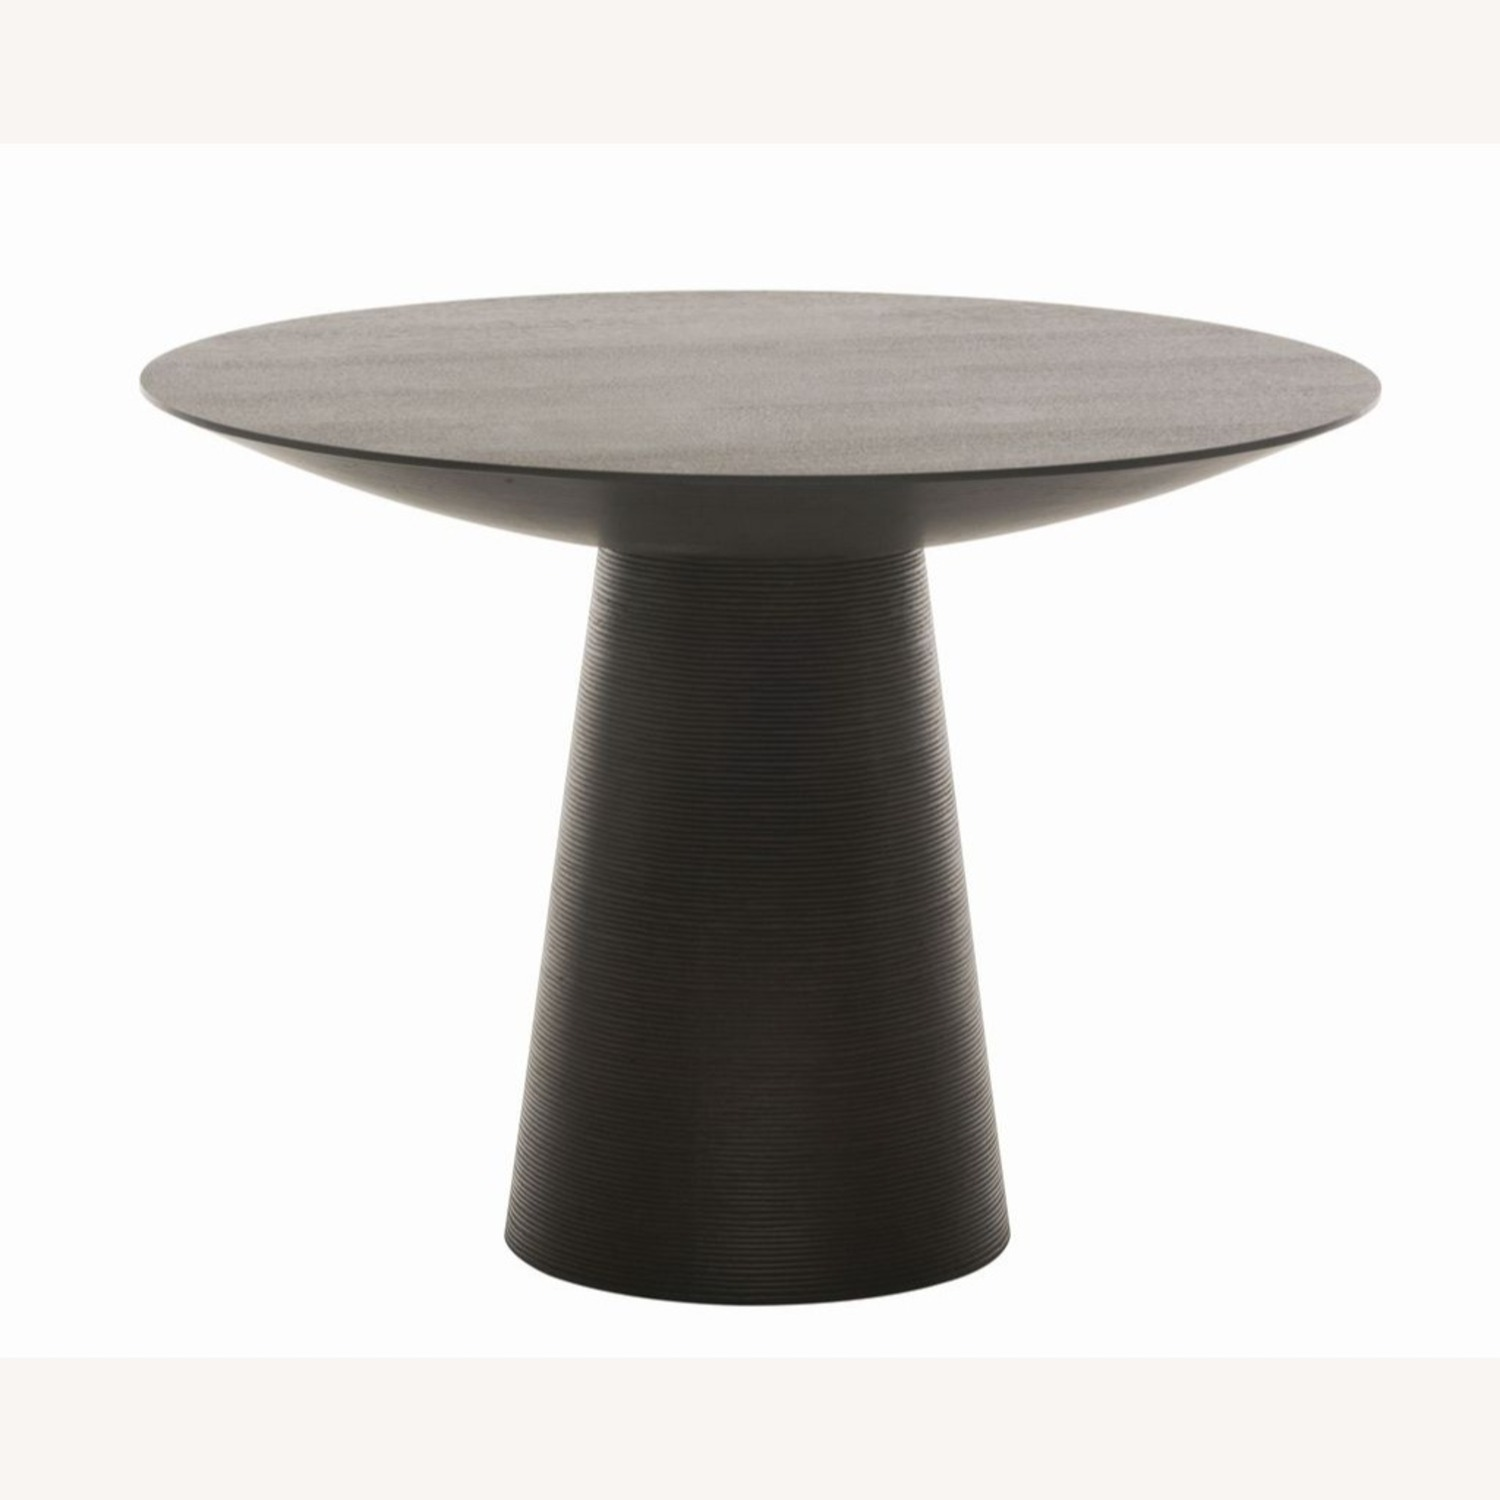 "Nuevo Living Round Wood Dining Table 40"" - image-1"